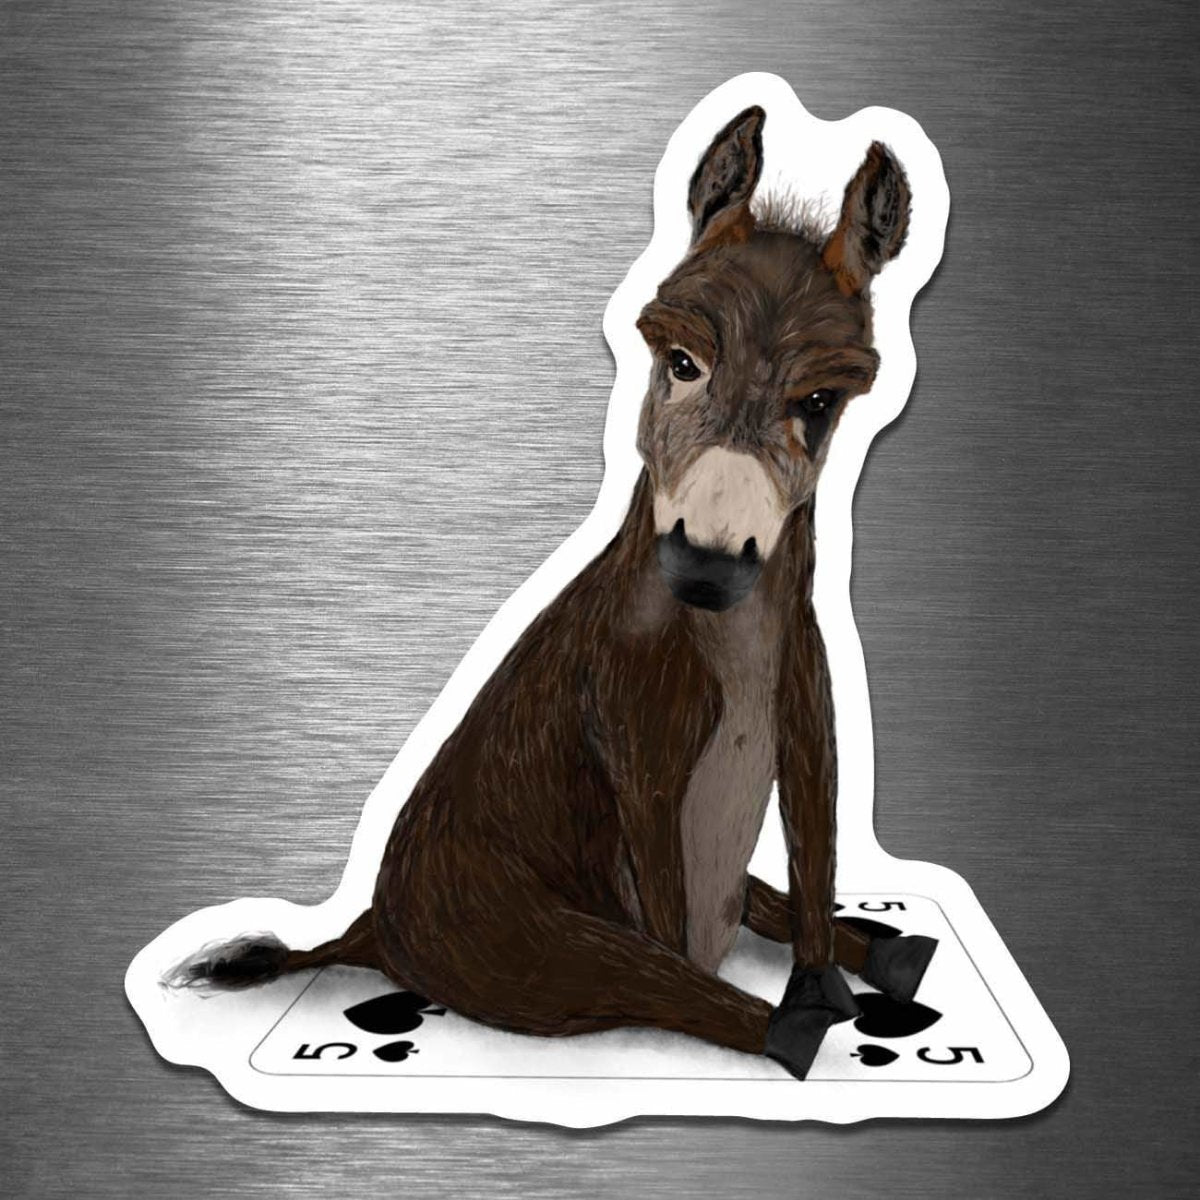 Badass on a Playing Card - Vinyl Sticker - Dan Pearce Sticker Shop